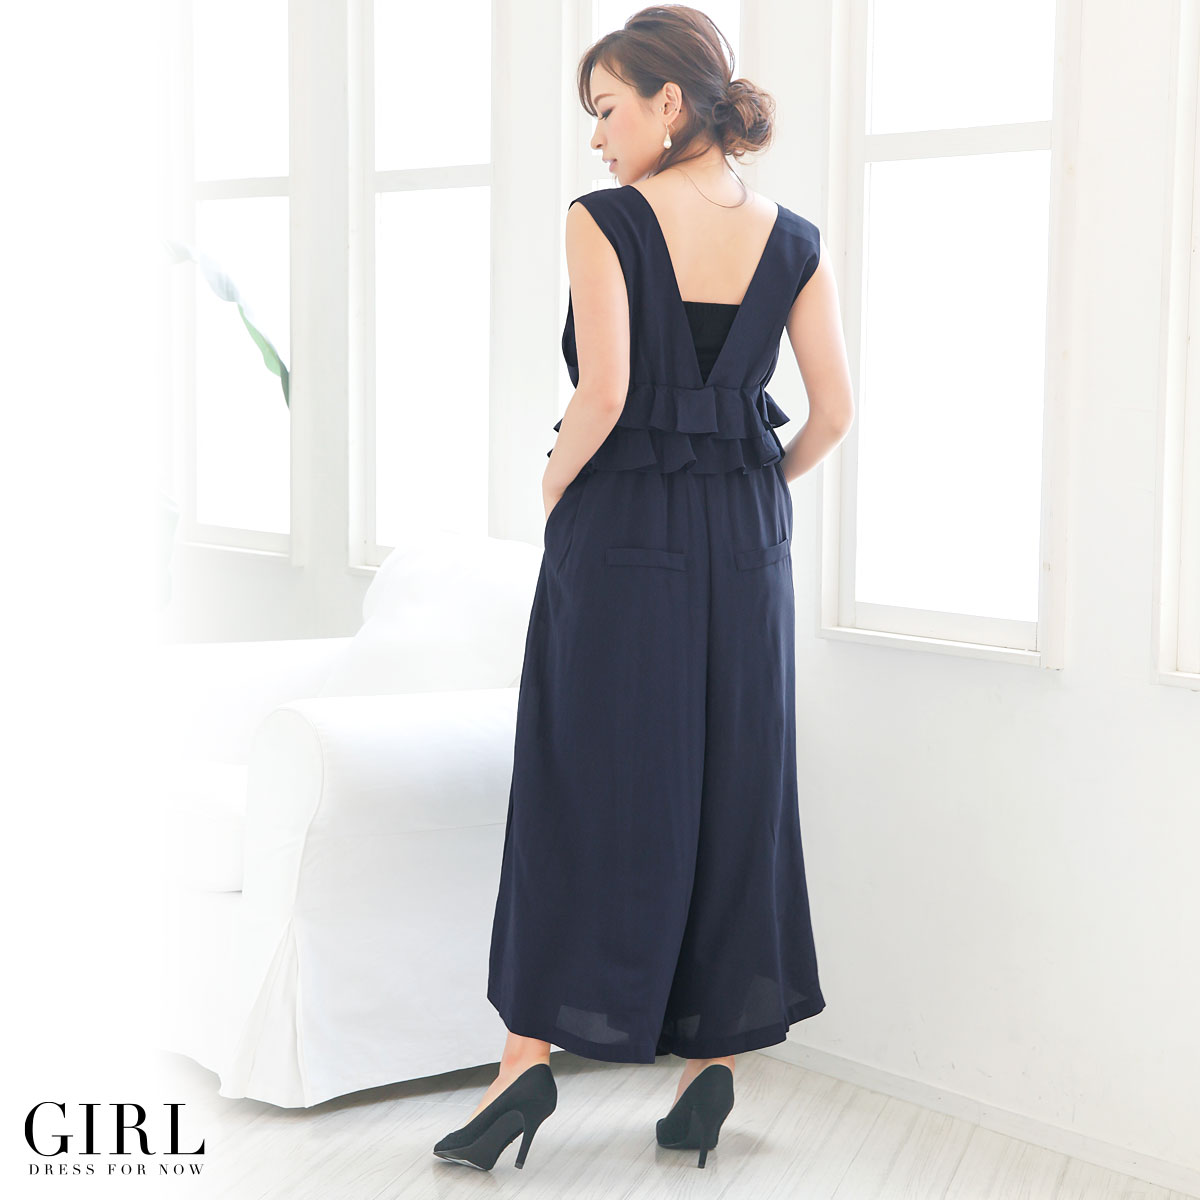 Dress shop GIRL | Rakuten Global Market: All-in-one pants wide ...